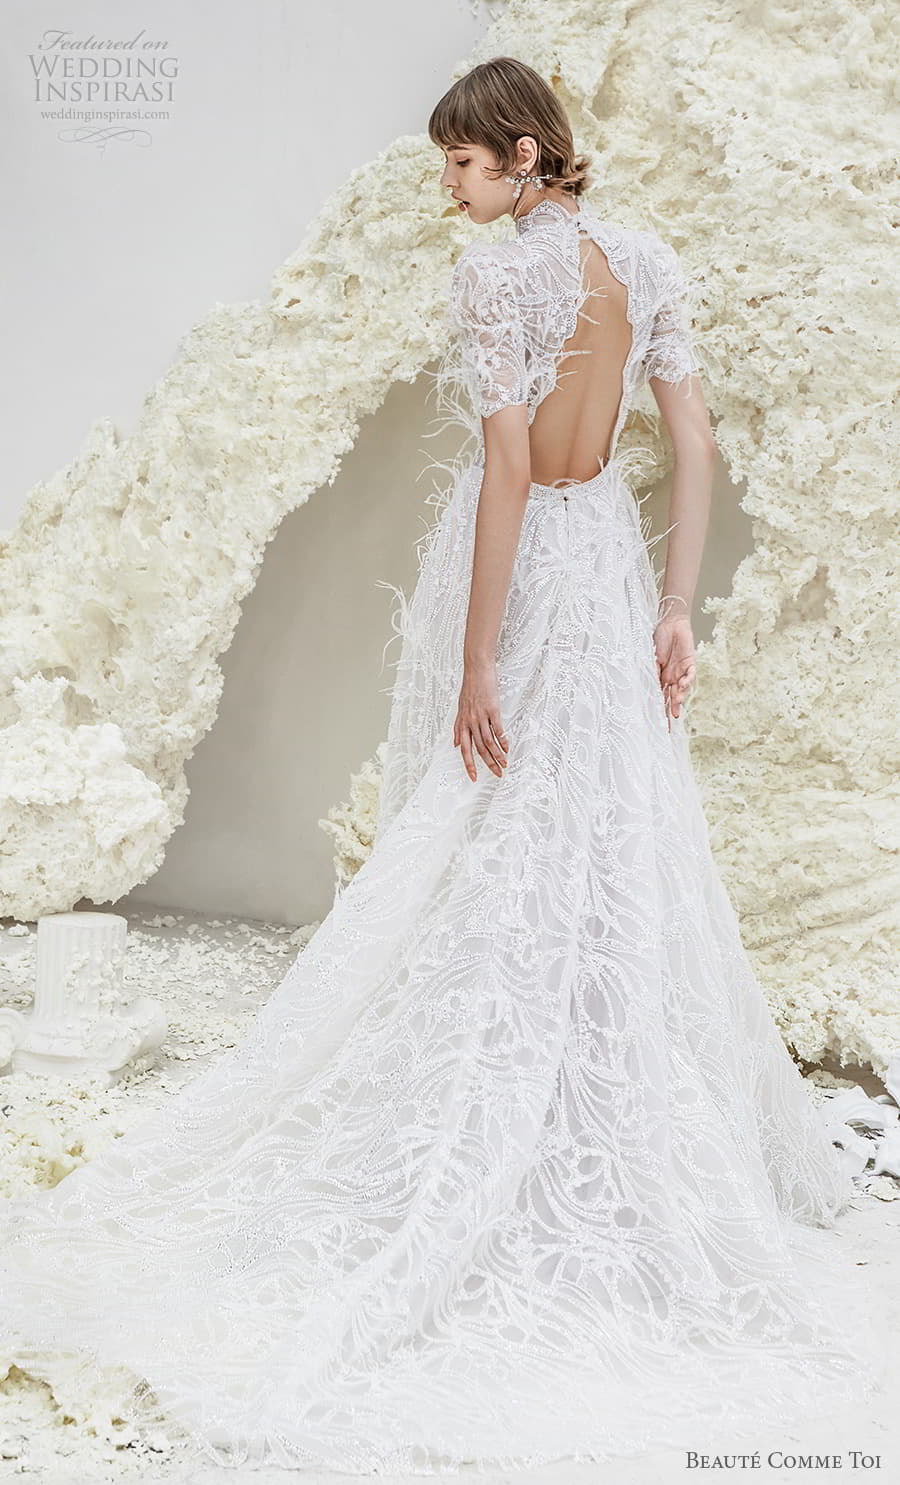 beaute comme toi spring 2022 bridal short puff sleeves high neckline fully embellished a line wedding dress feather chapel train (sheila) bv